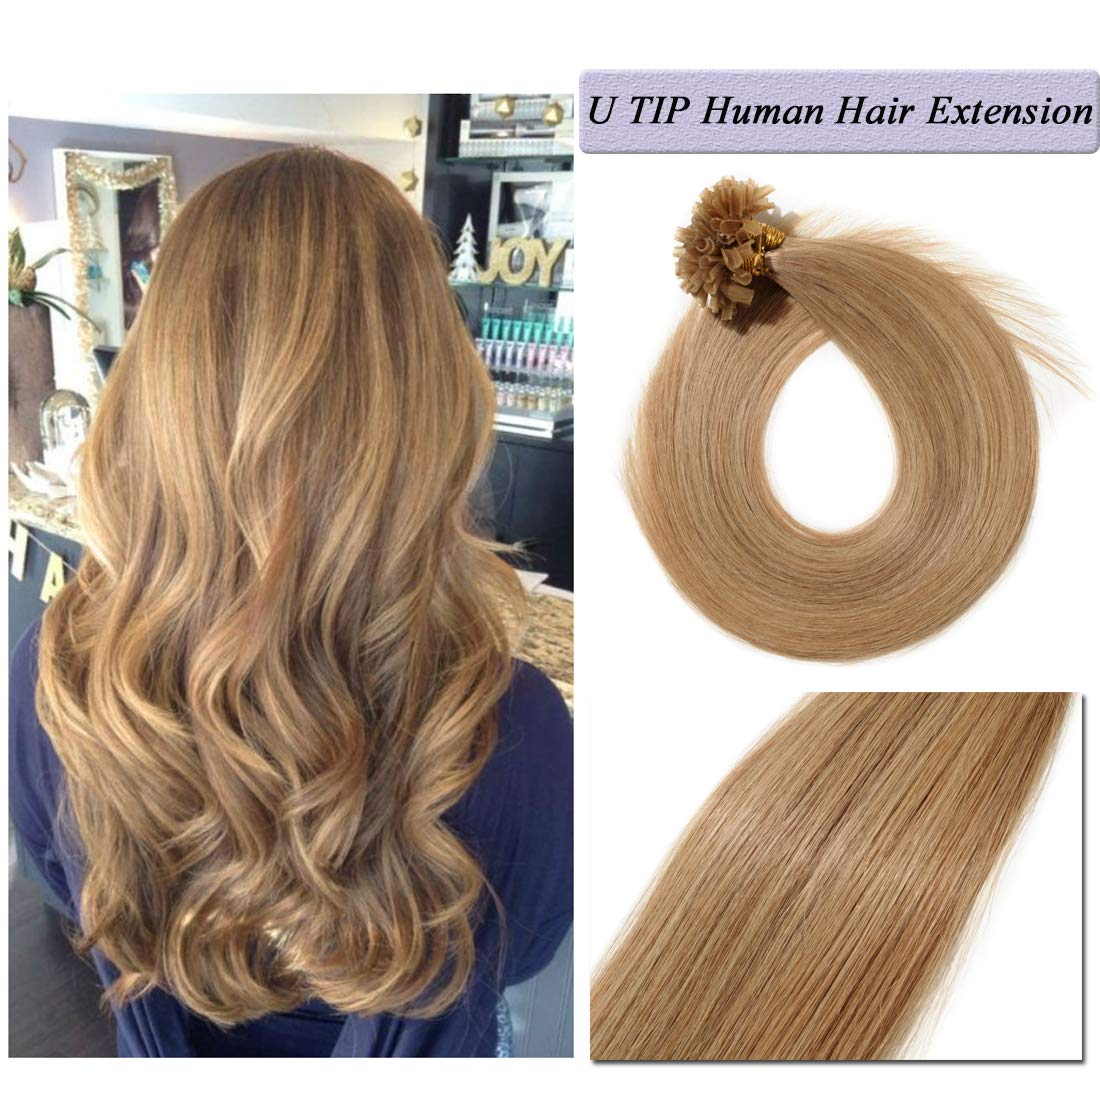 U Tip Human Hair Extensions Pre Bonded Nail Tipped Real Human Hair Piece Italian Keratin U Tip Fusion Extensions Silky Straight 100 Strands 16''-50g (#27 Dark Blonde) by S-noilite